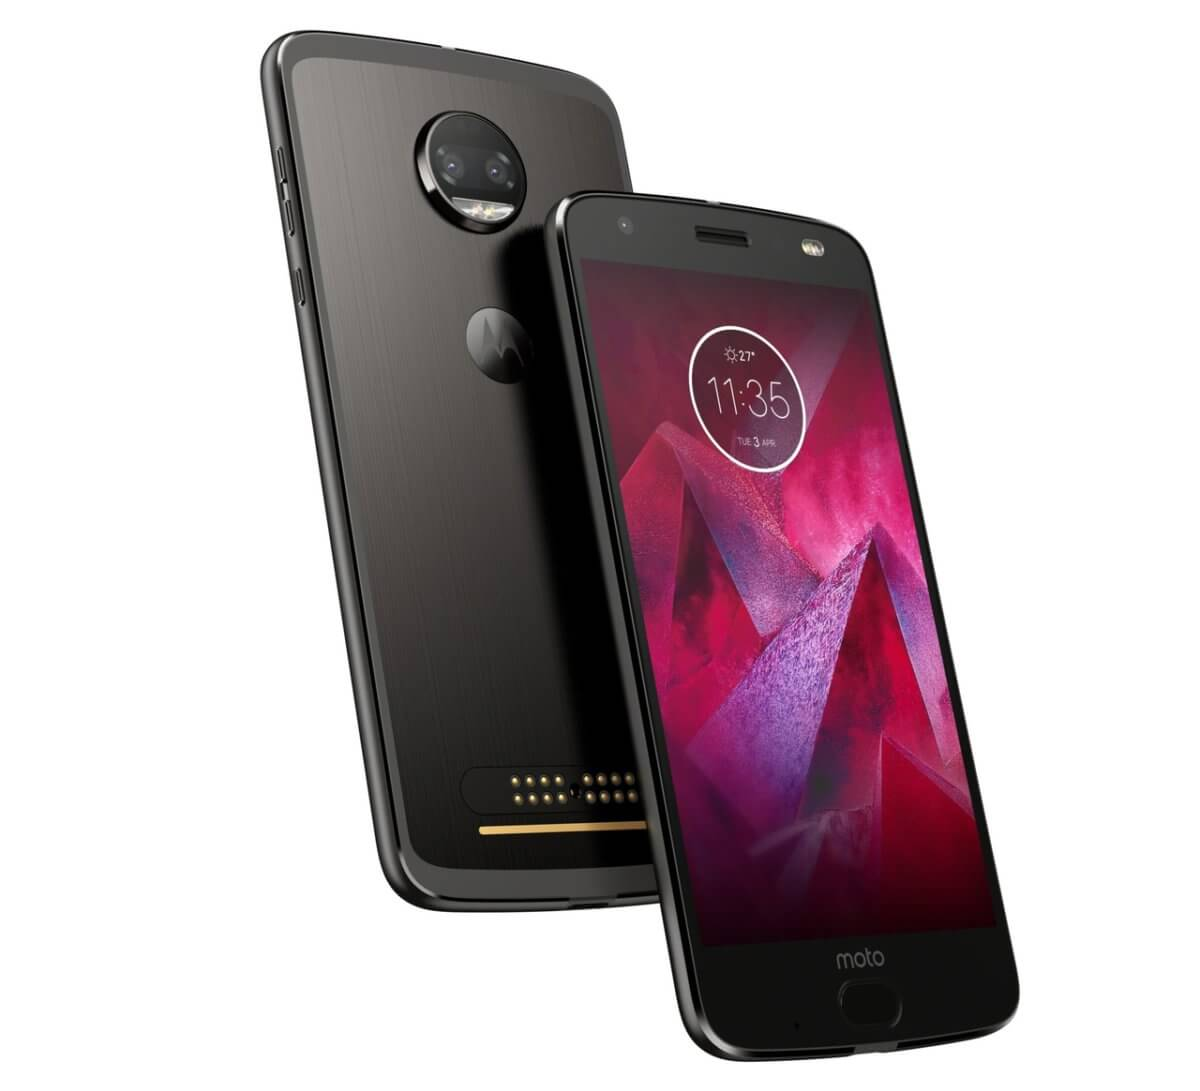 Motorola Moto Z2 Force detail